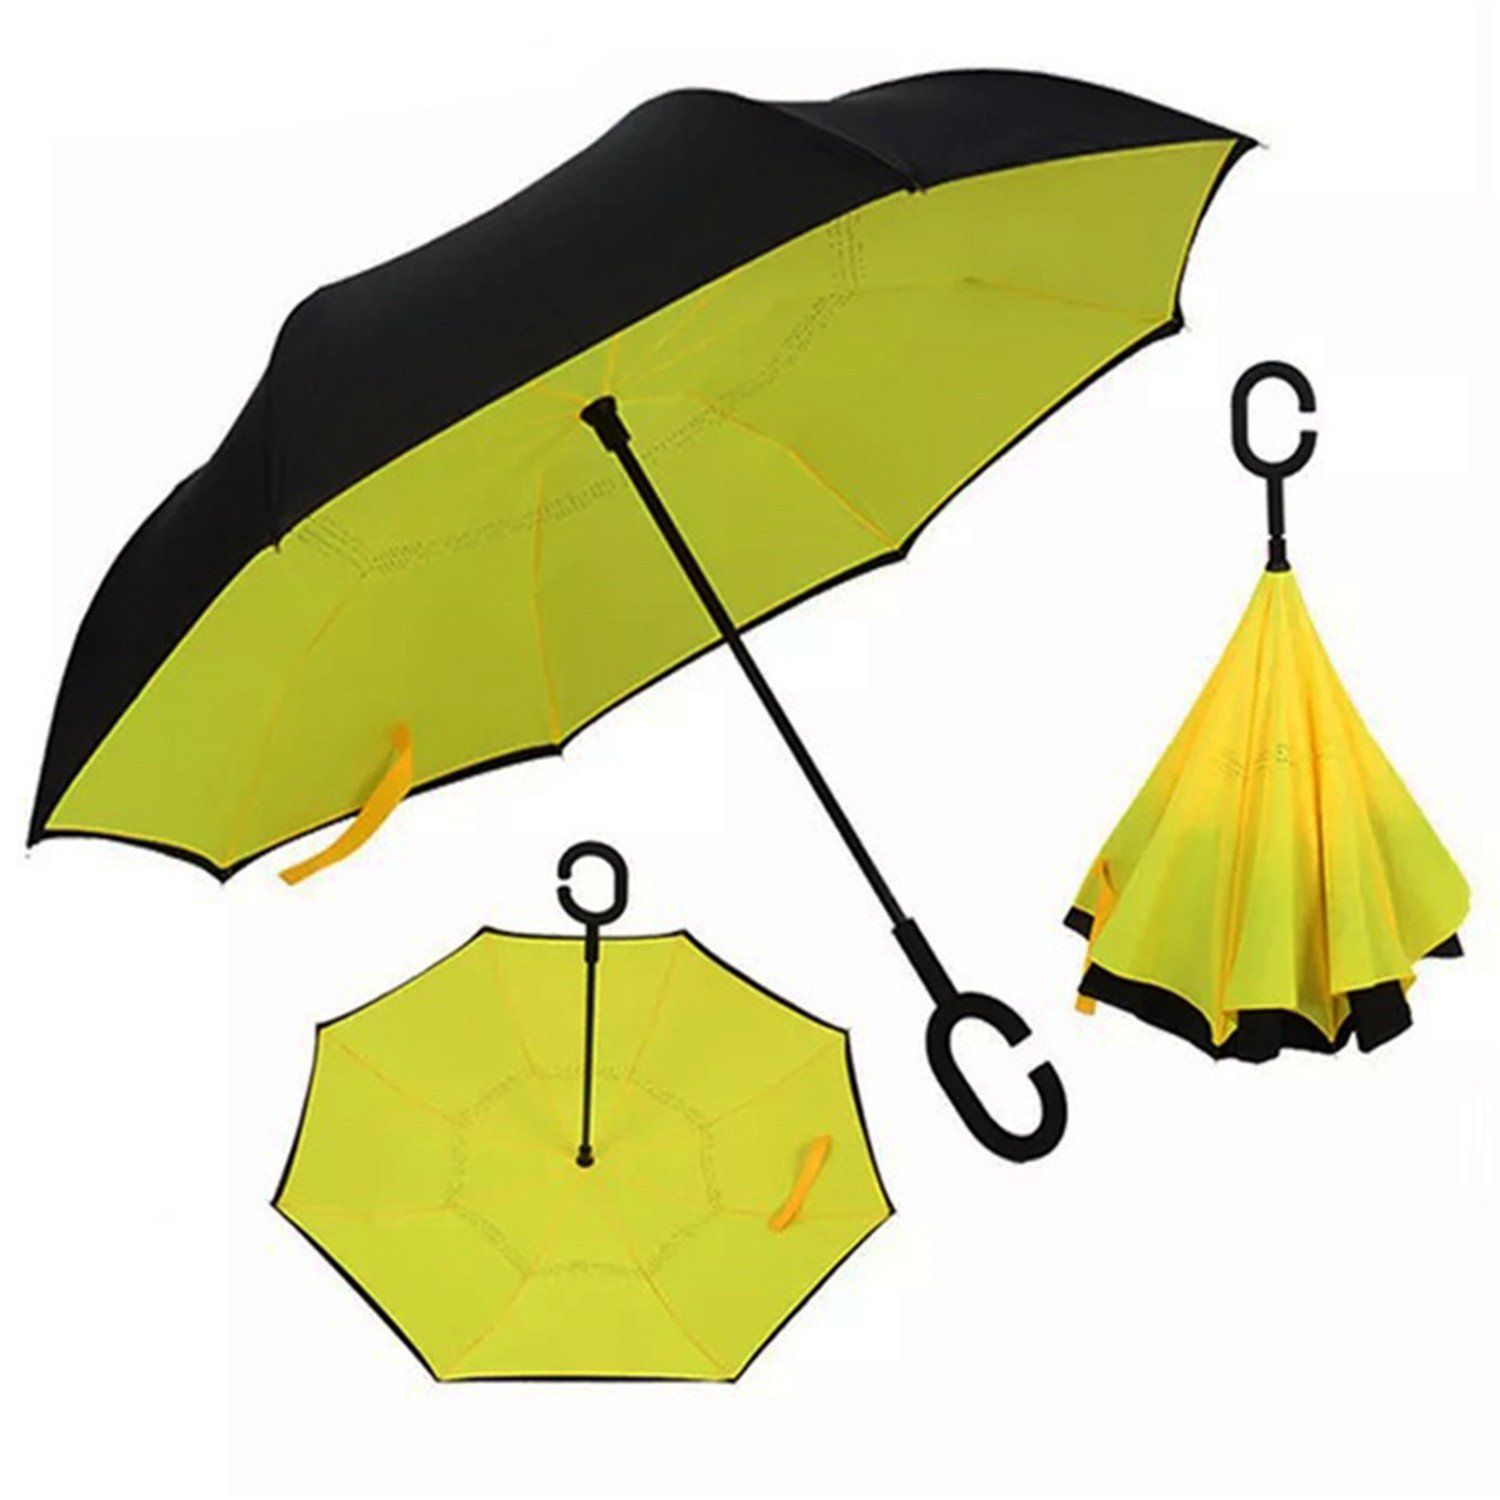 Amazon.com : Miki Da Inverted Umbrella Double Layer sun parasol Women Rain Reverse Umbrellas male guarda chuva invertido paraguas parapluie Windproof Black ...